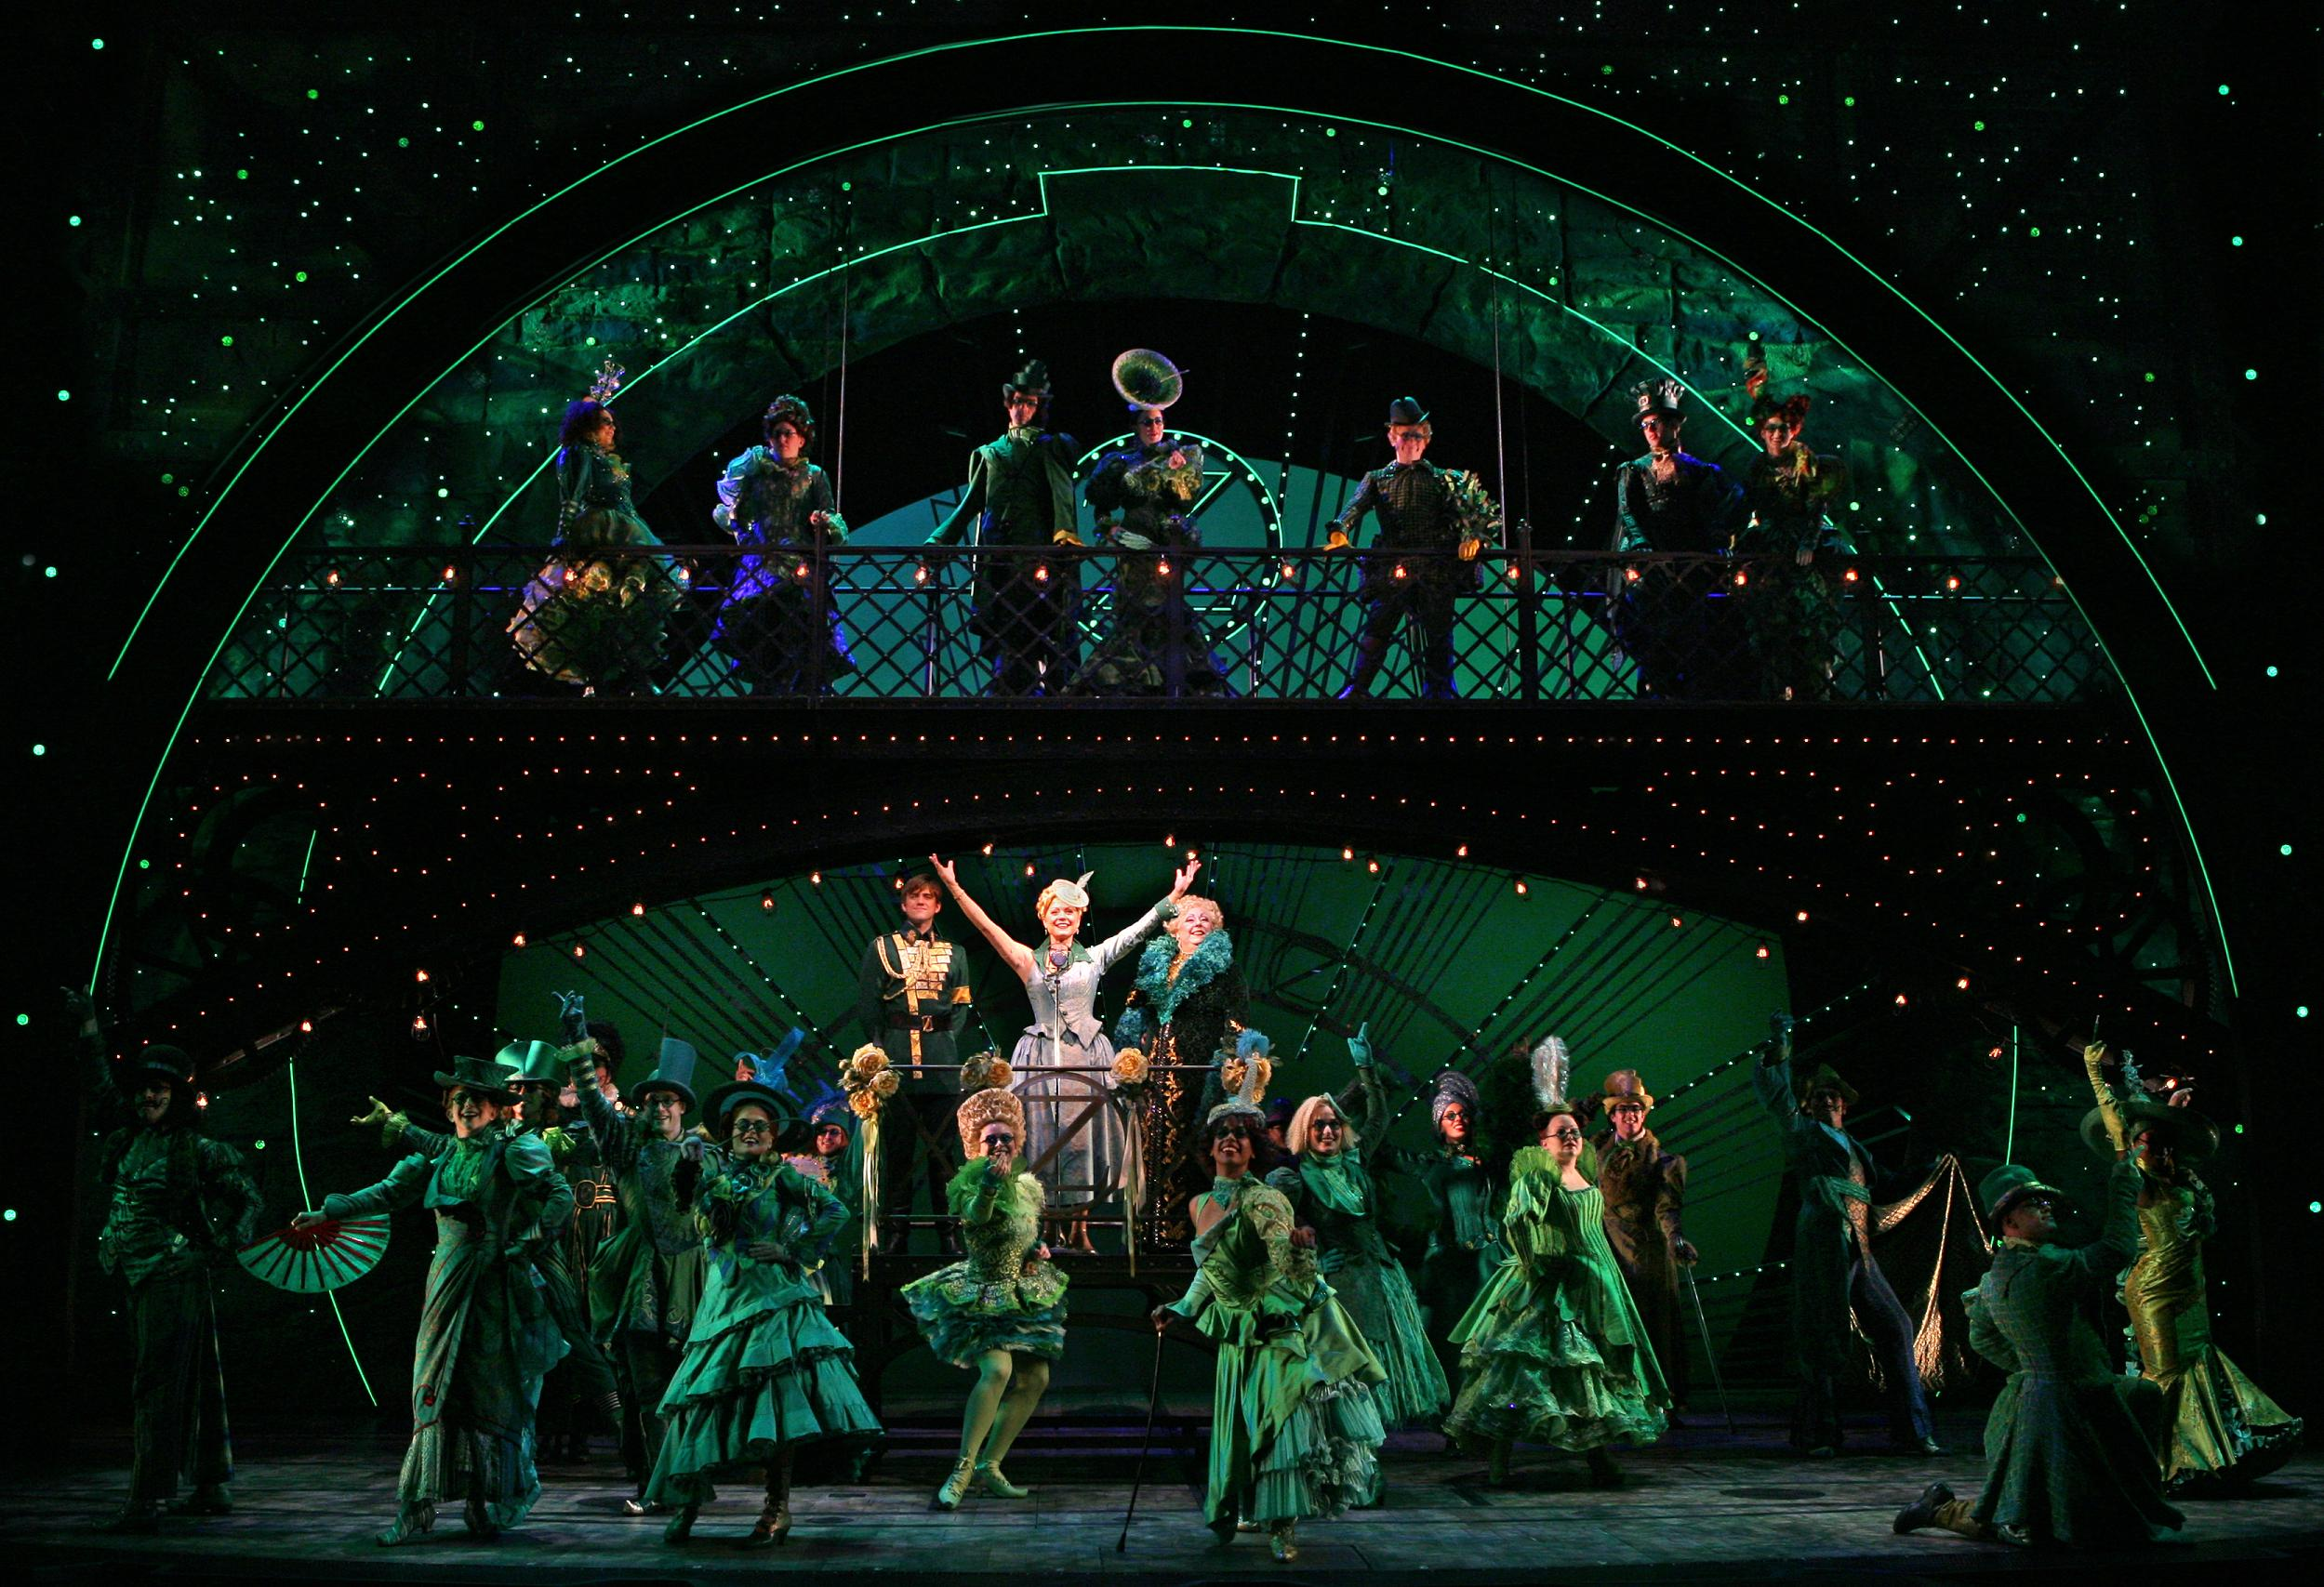 Gershwin Theater Nyc Wallpapers High Quality